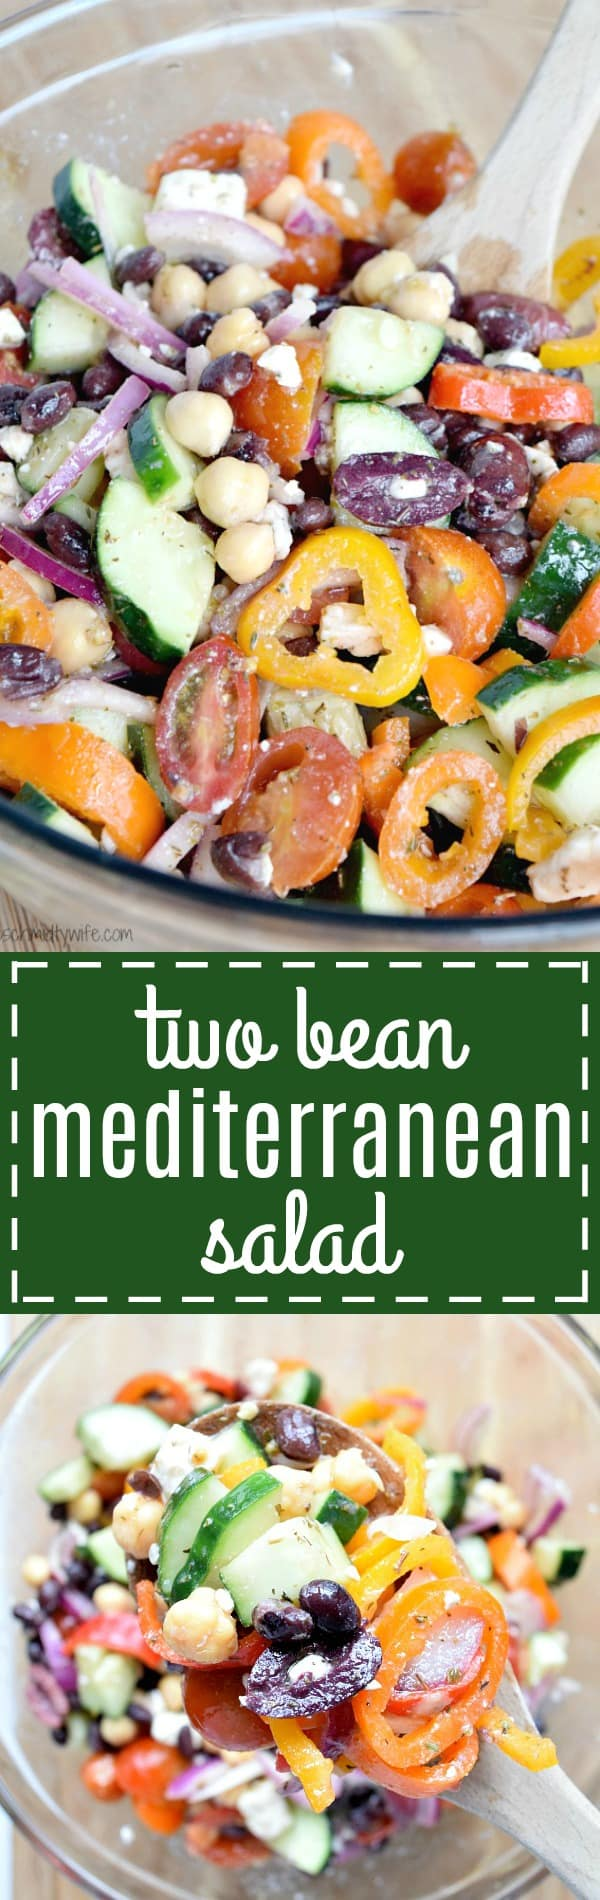 Two Bean Mediterranean Salad perfect for a summer picnic or bbq